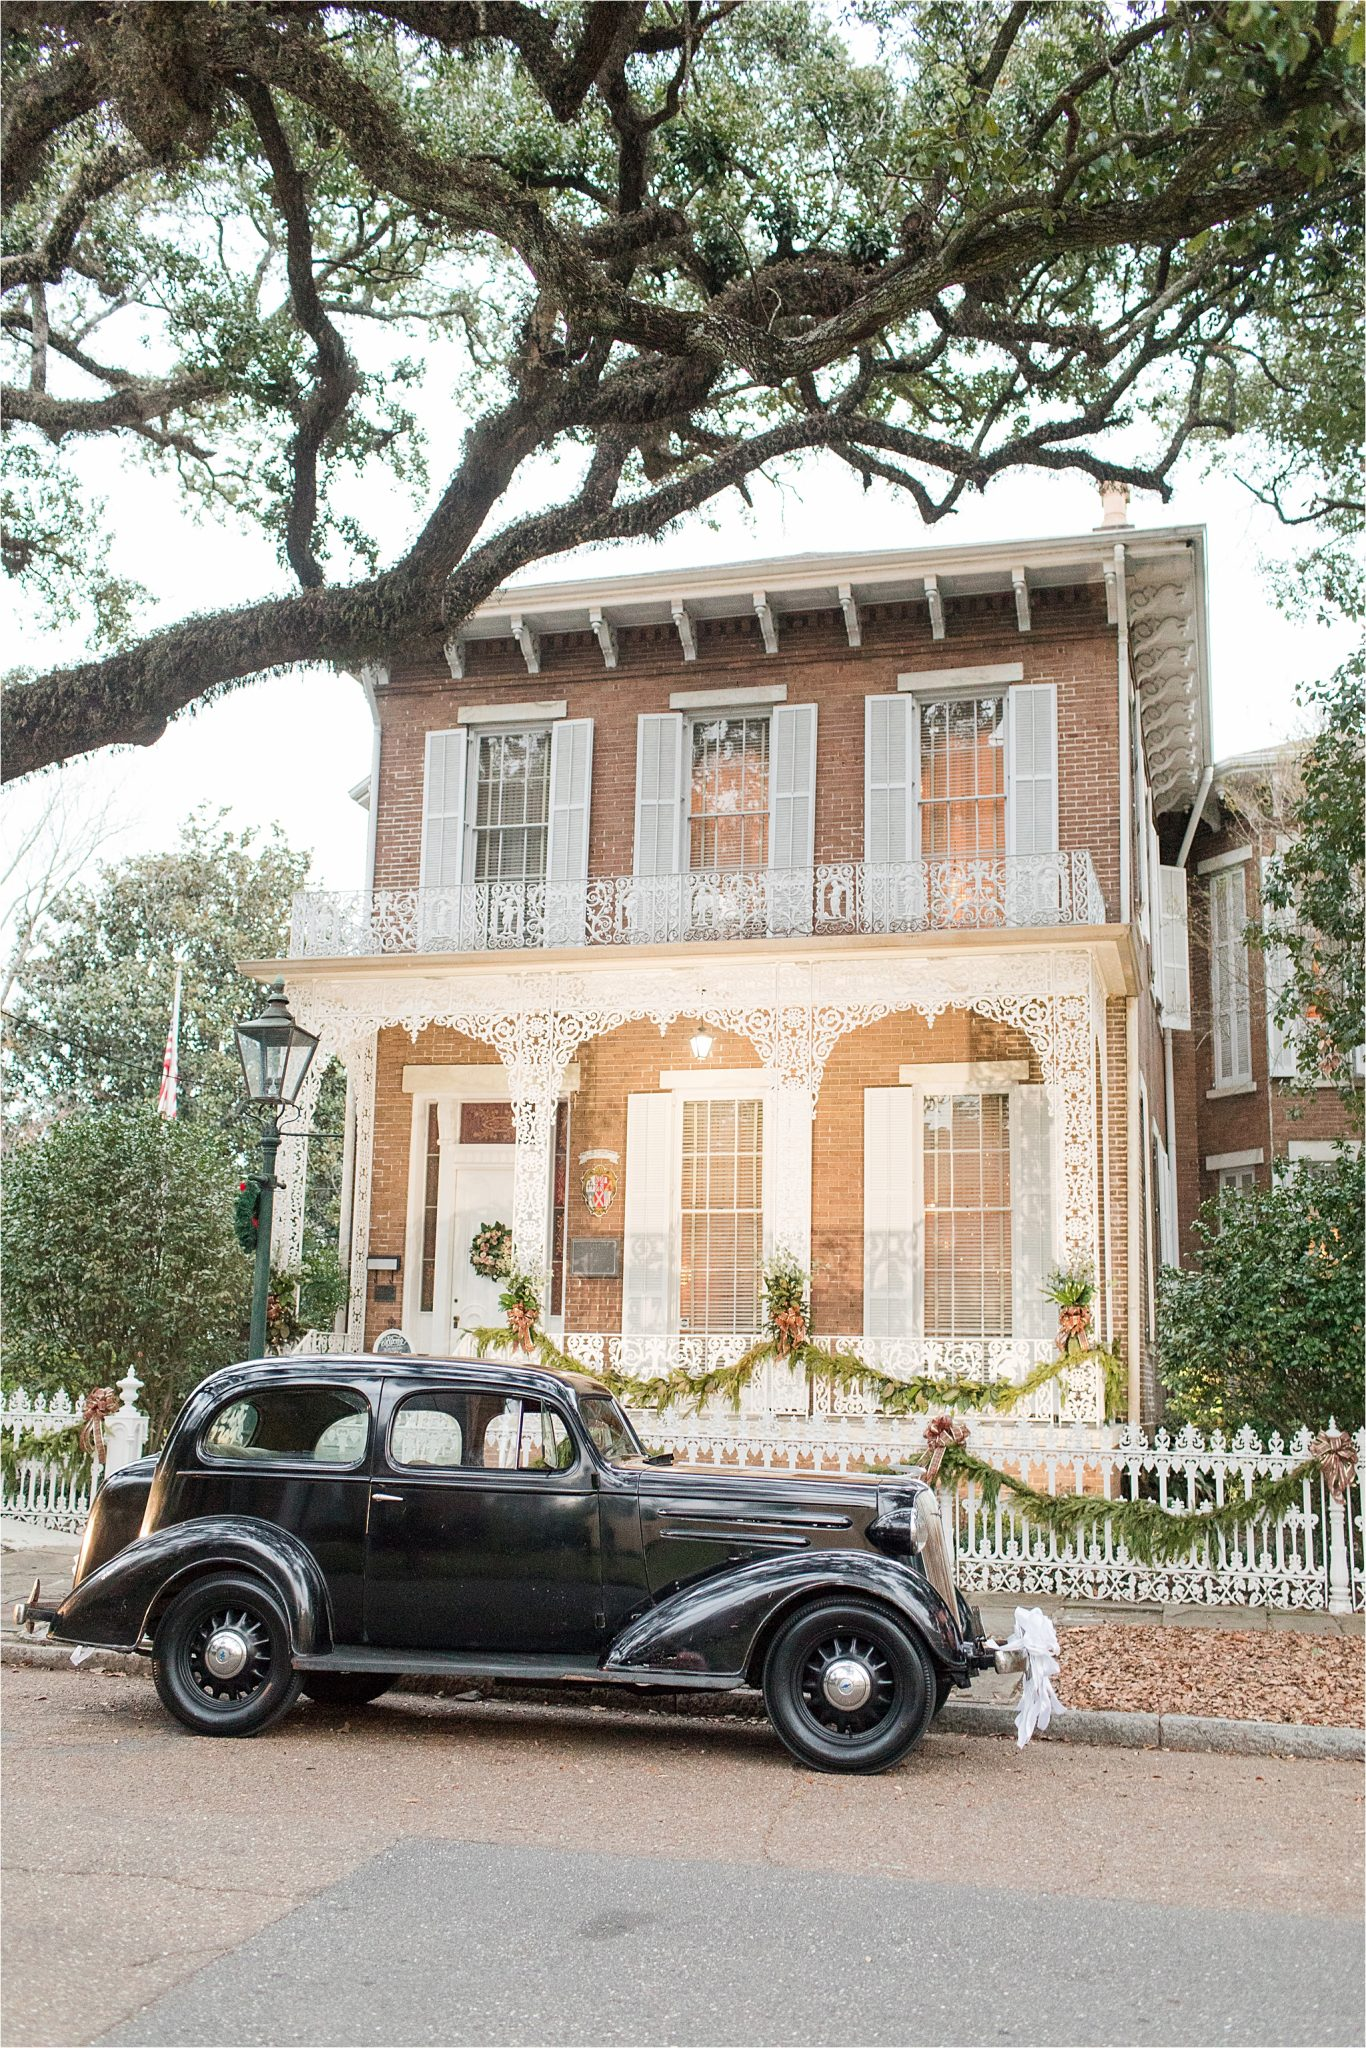 Richards DAR house-downtown-mobile-antique-vintage-car-wedding-reception-venue-alabama-mobile-wedding-photographer